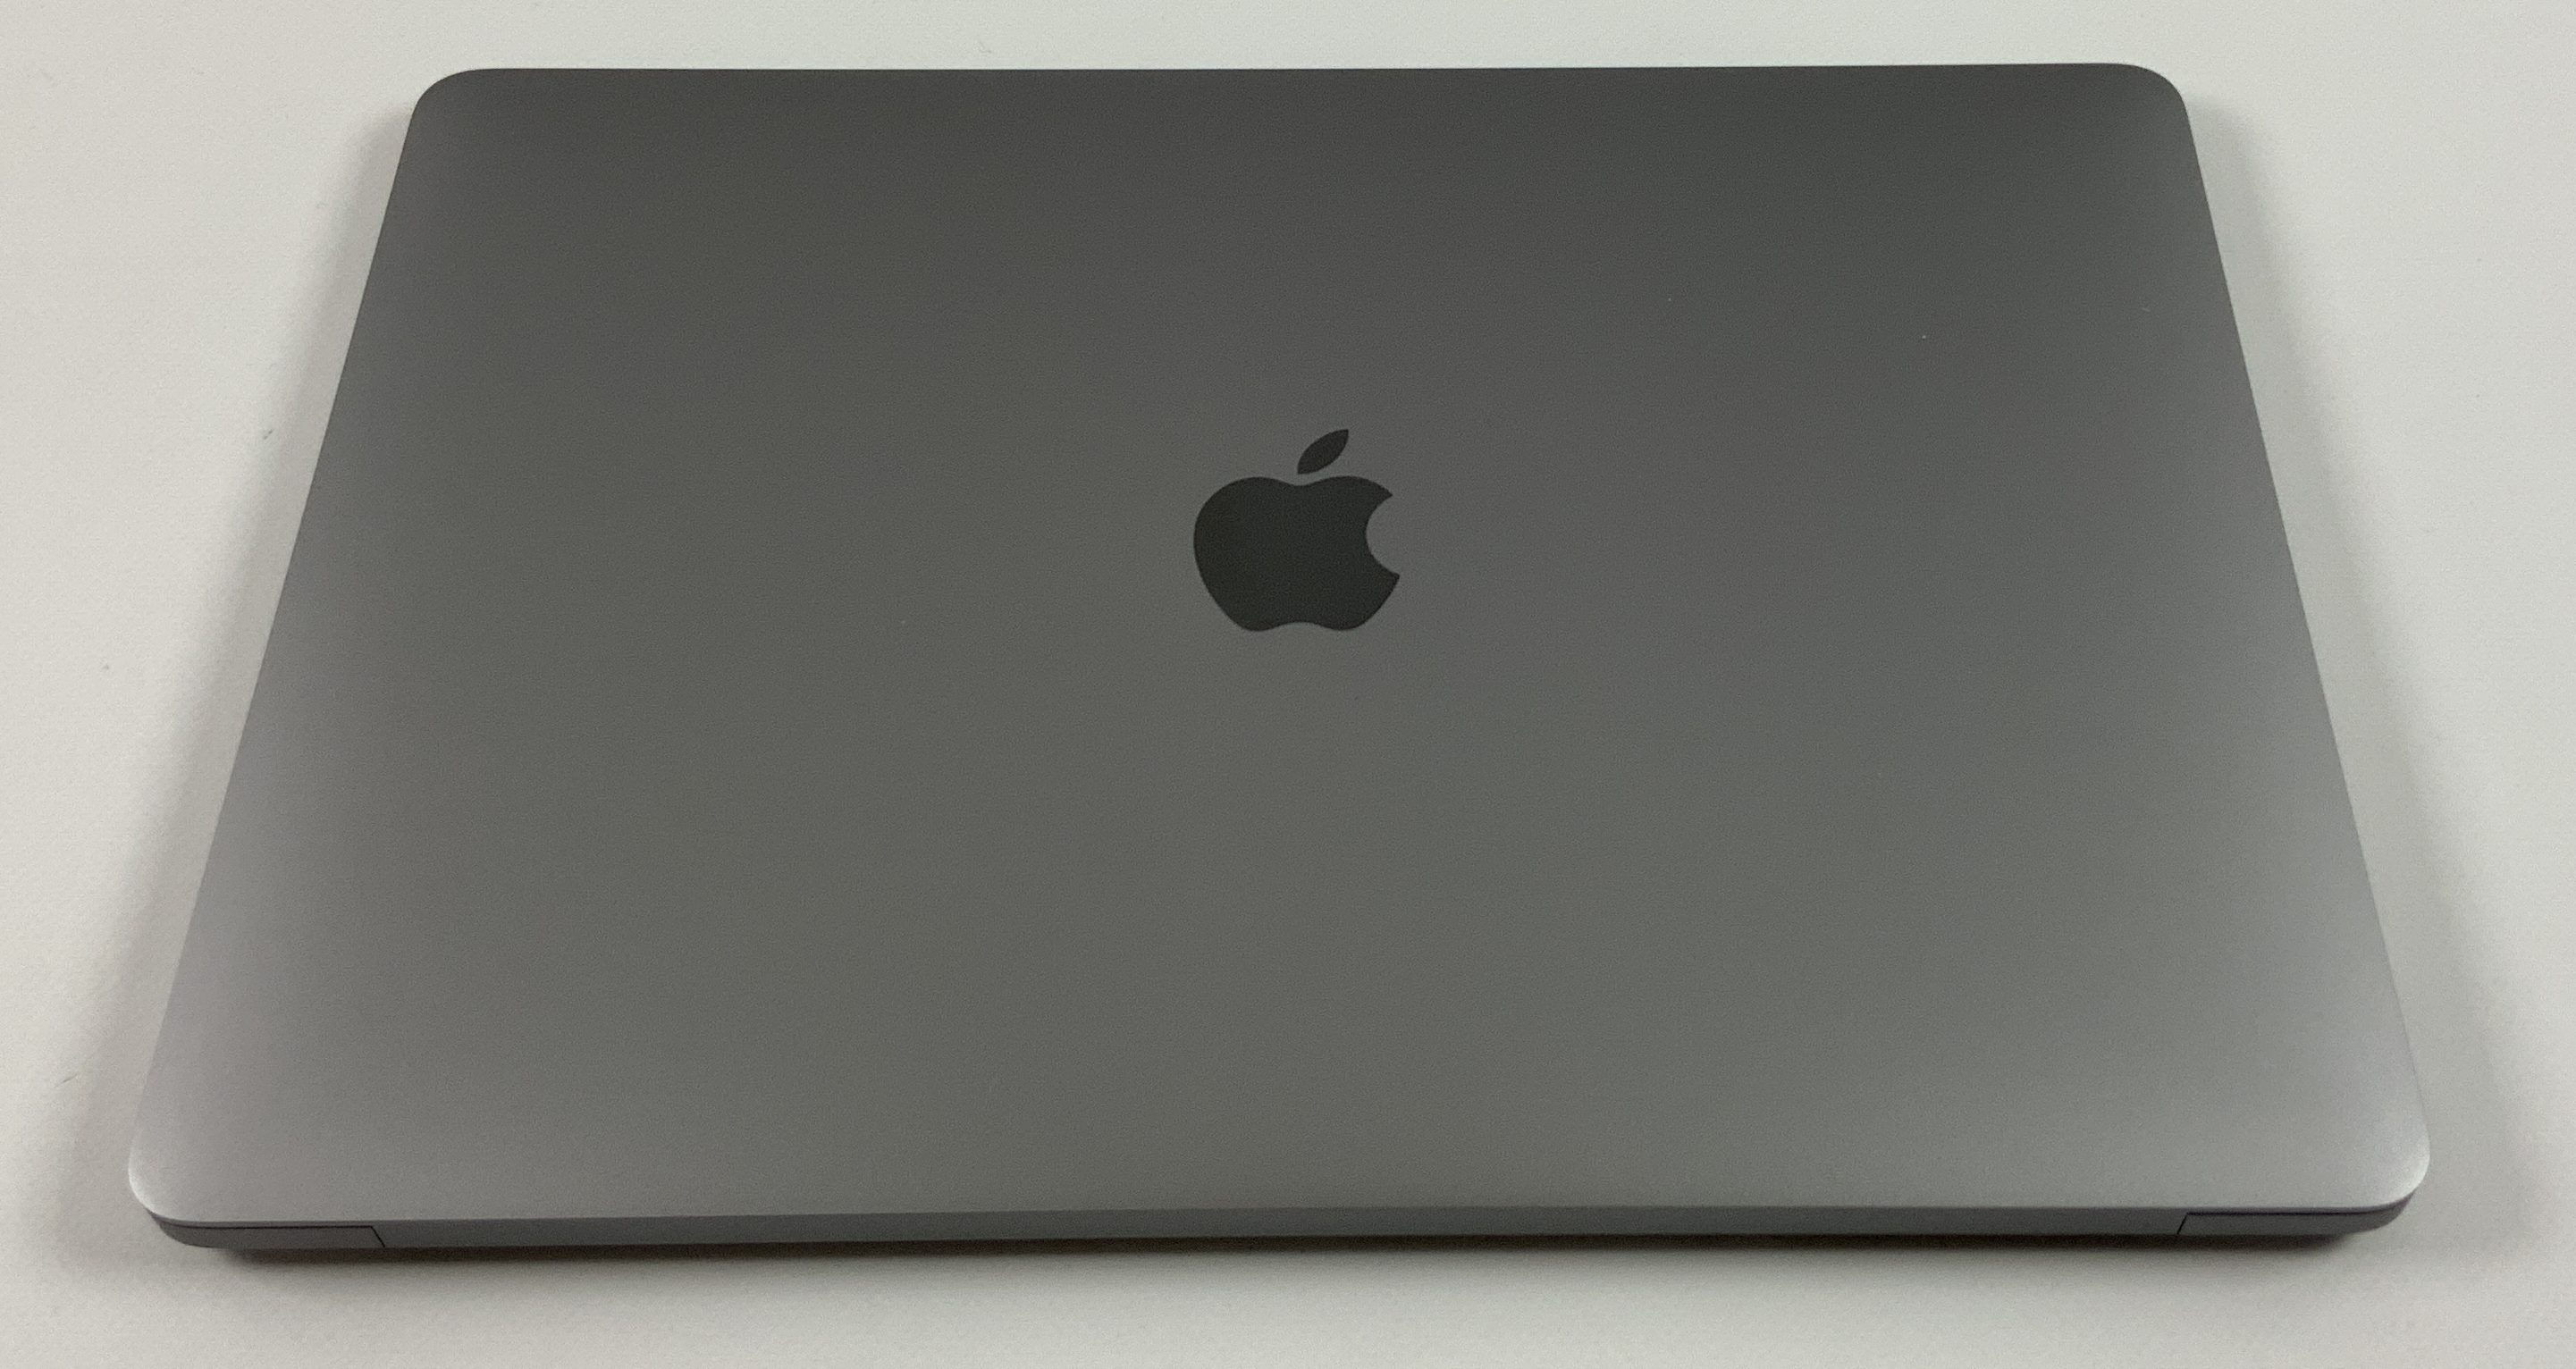 "MacBook Air 13"" Early 2020 (Intel Quad-Core i5 1.1 GHz 16 GB RAM 512 GB SSD), Space Gray, Intel Quad-Core i5 1.1 GHz, 16 GB RAM, 512 GB SSD, bild 2"